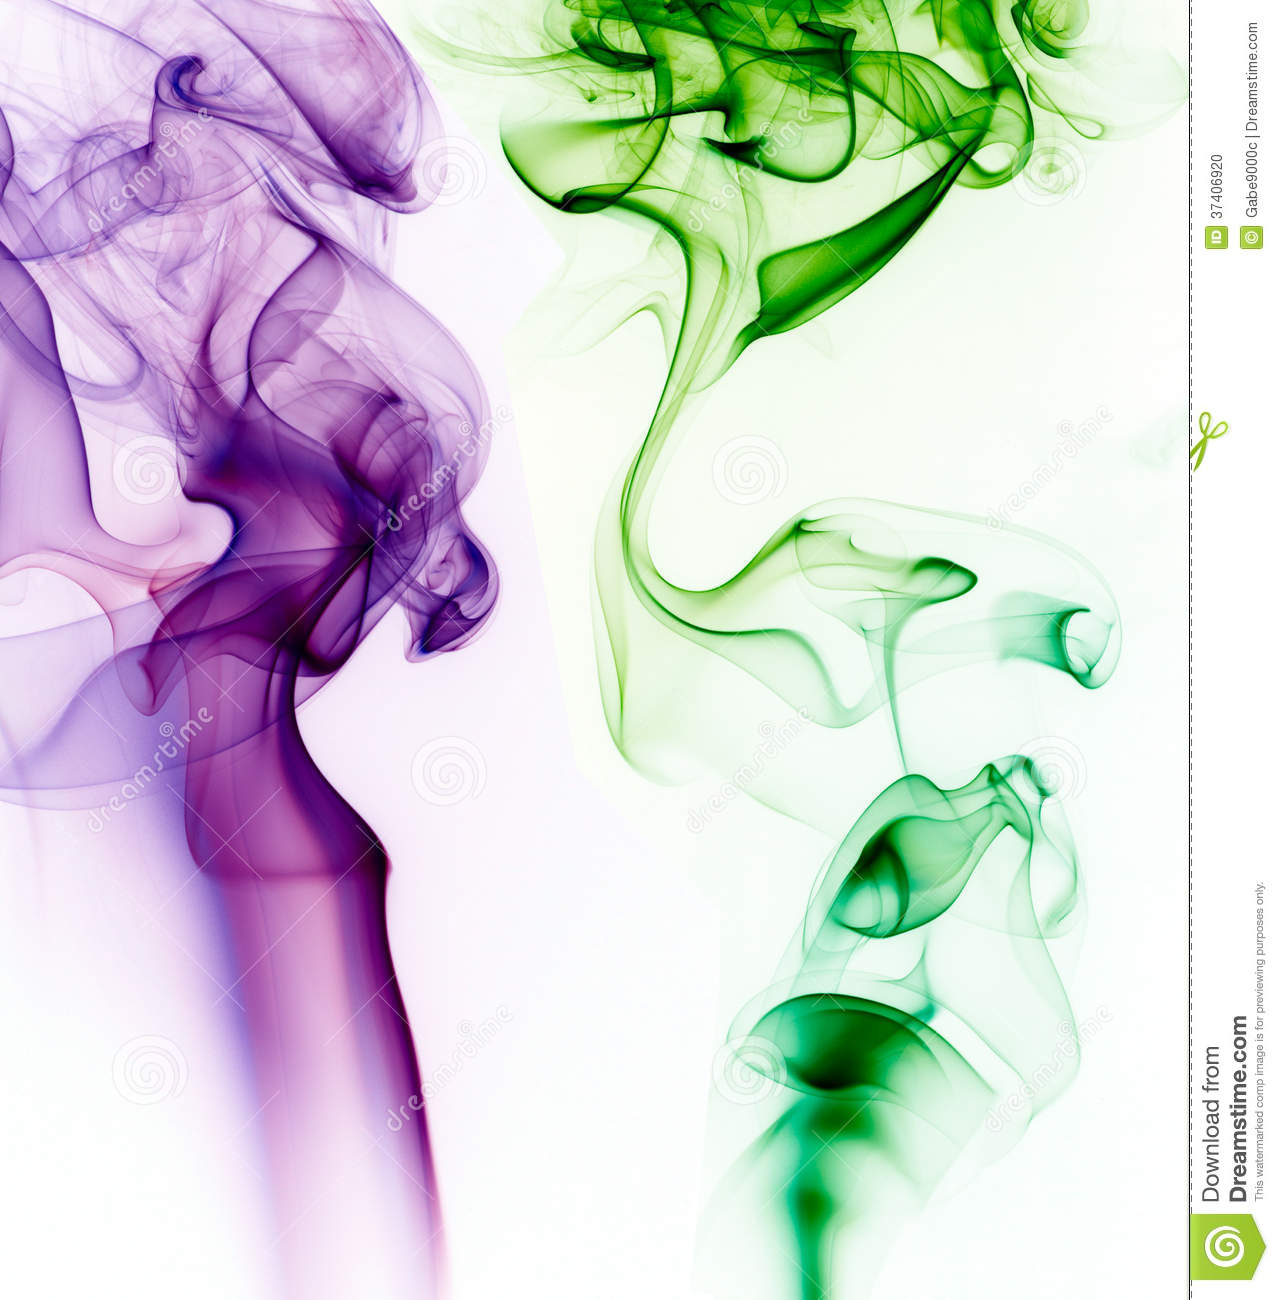 purple and green smoke on white background stock photo image 37406920. Black Bedroom Furniture Sets. Home Design Ideas